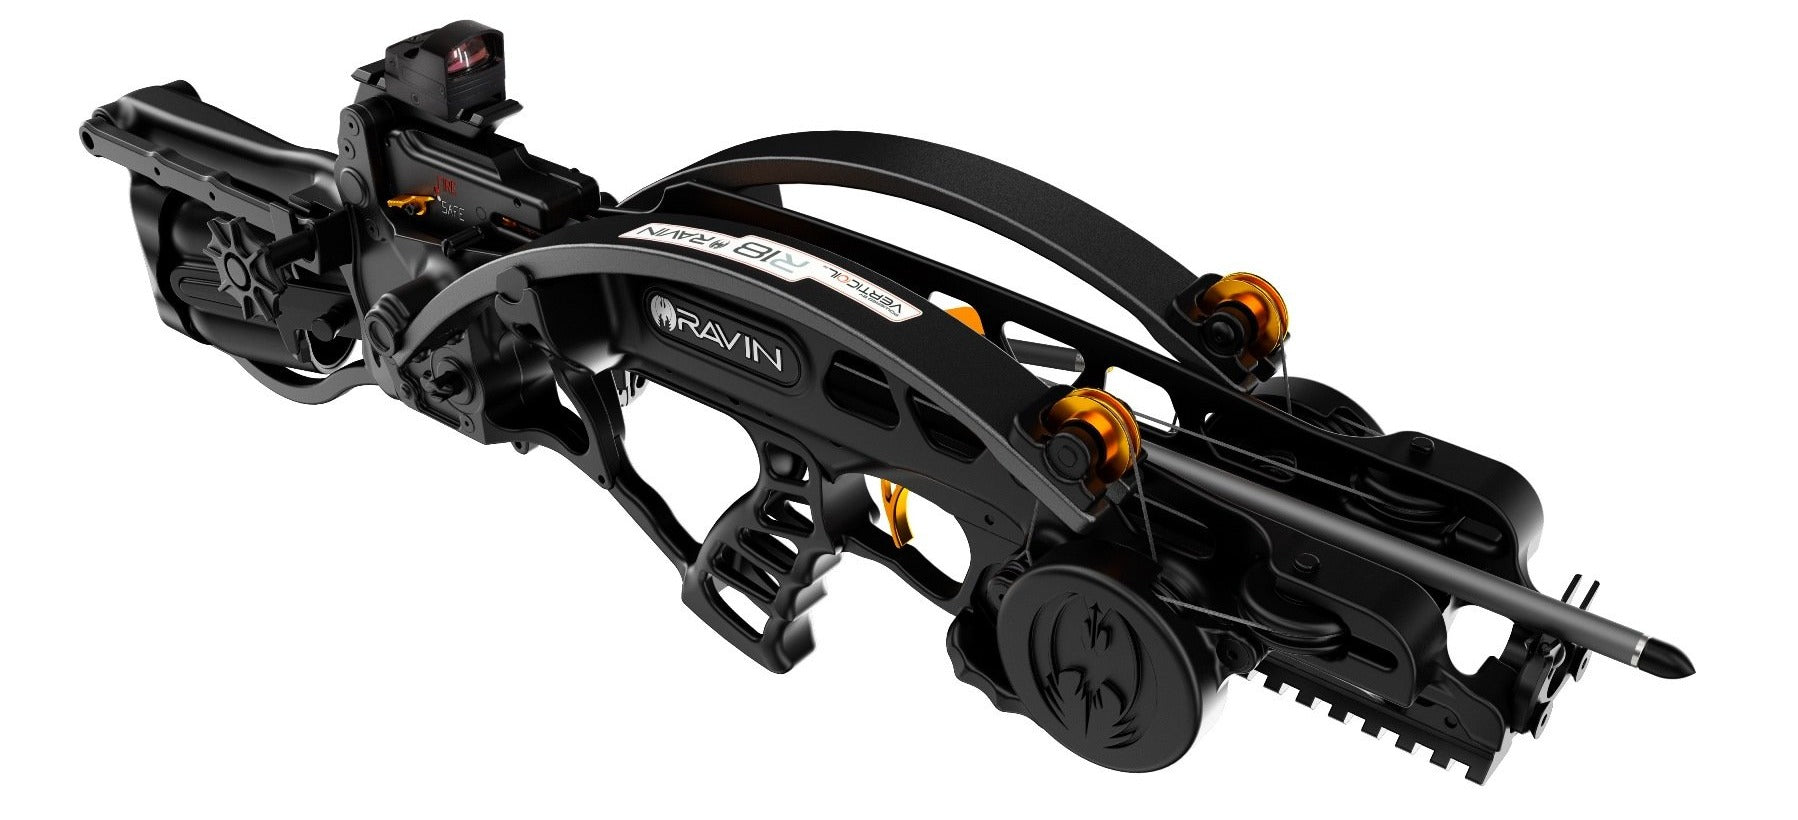 Ravin R18 Crossbow Package for sale at Kiigns Hunting.